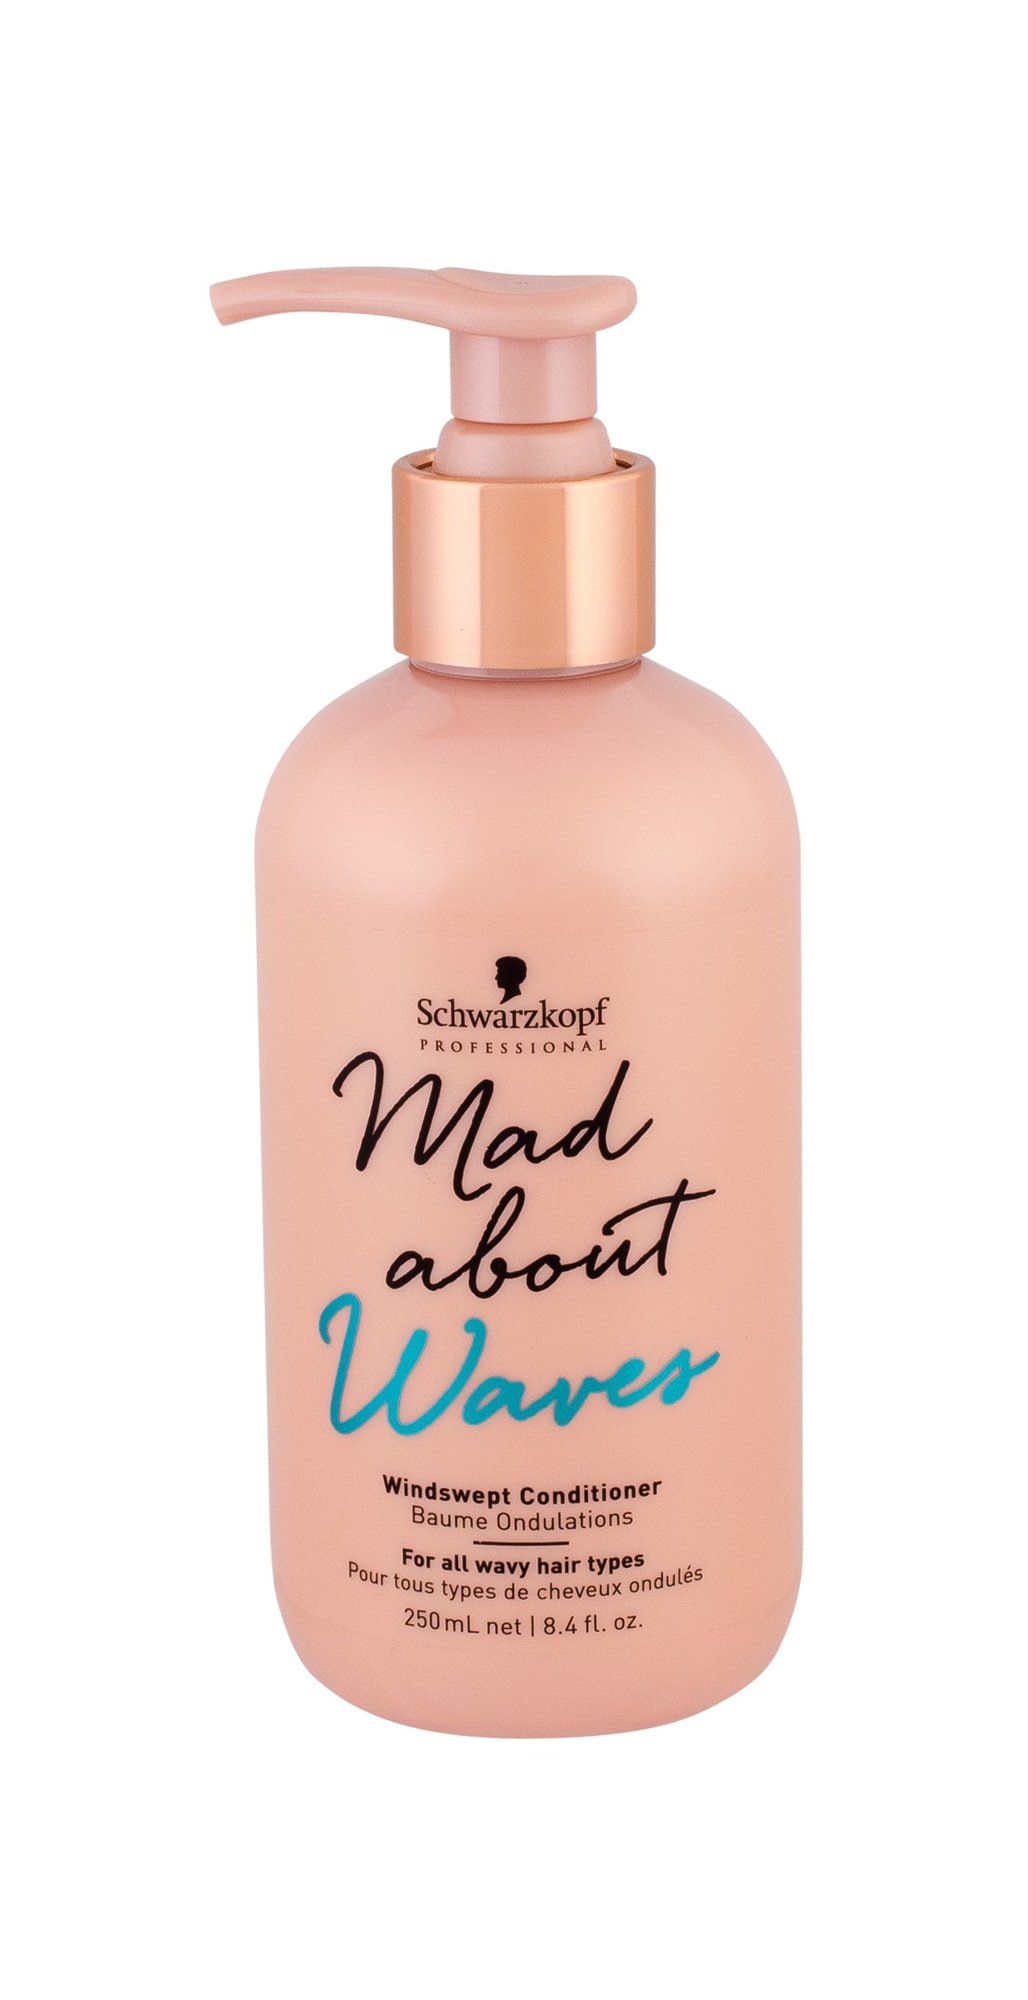 Schwarzkopf Mad About Waves Conditioner 250ml